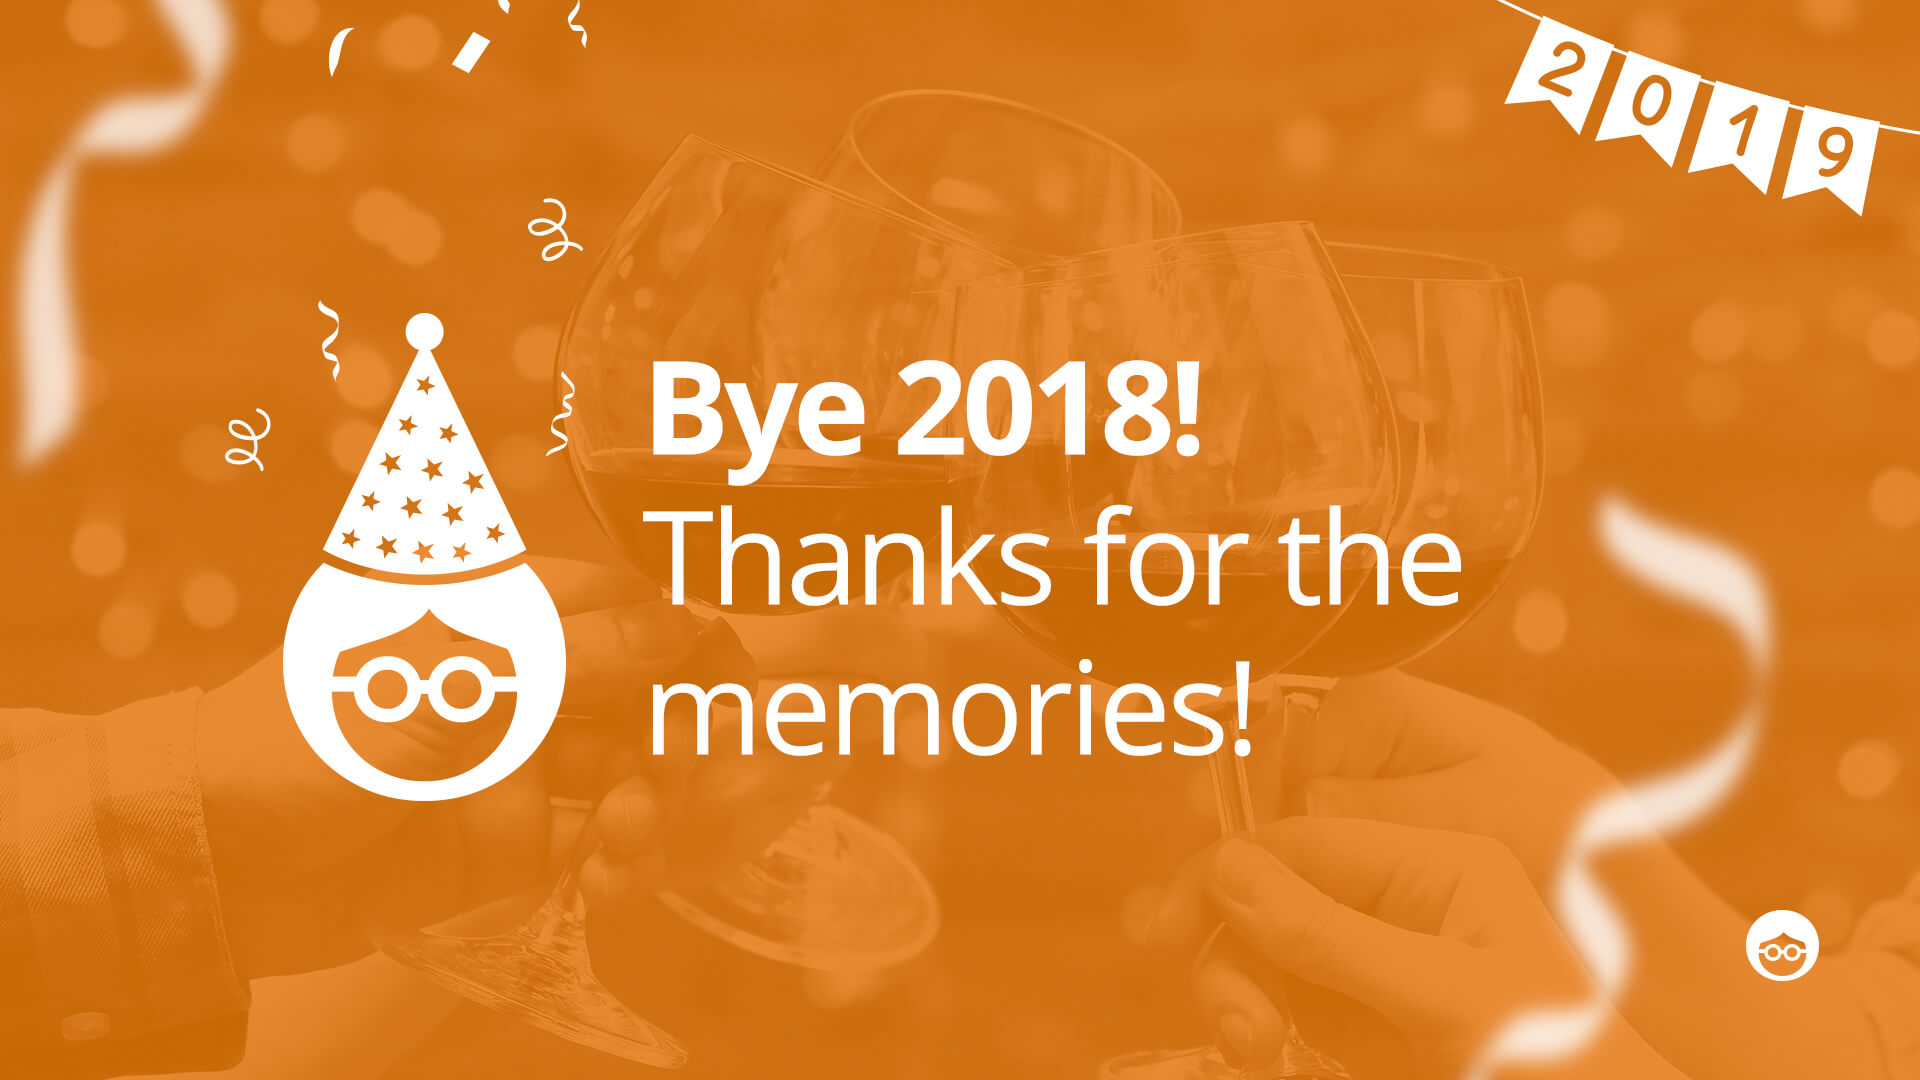 Outbrain 2018 - A Content Year to Remember